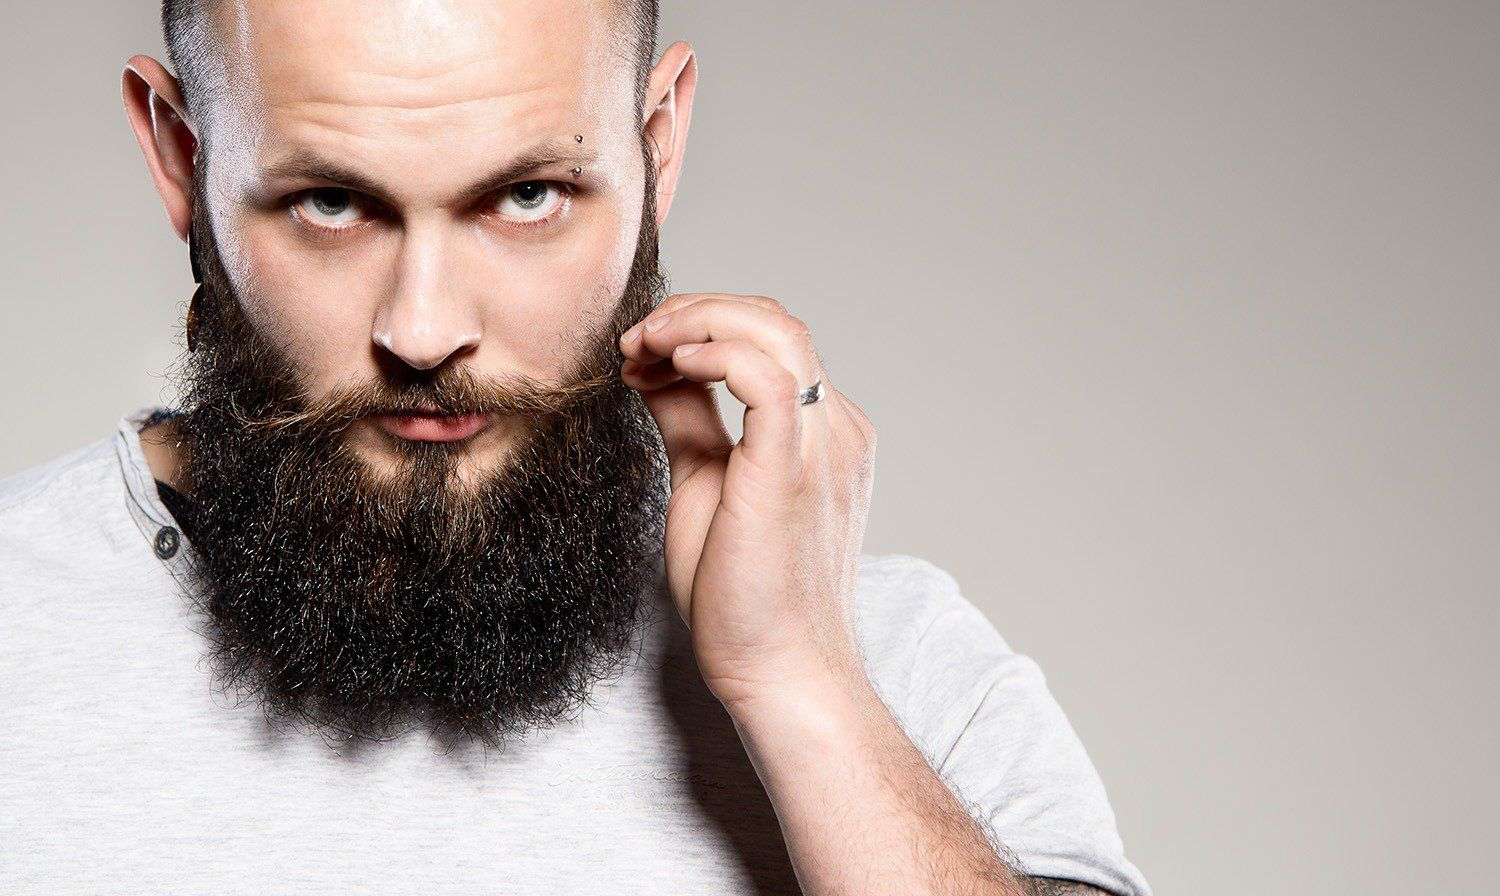 Beard Oil Is Beneficial